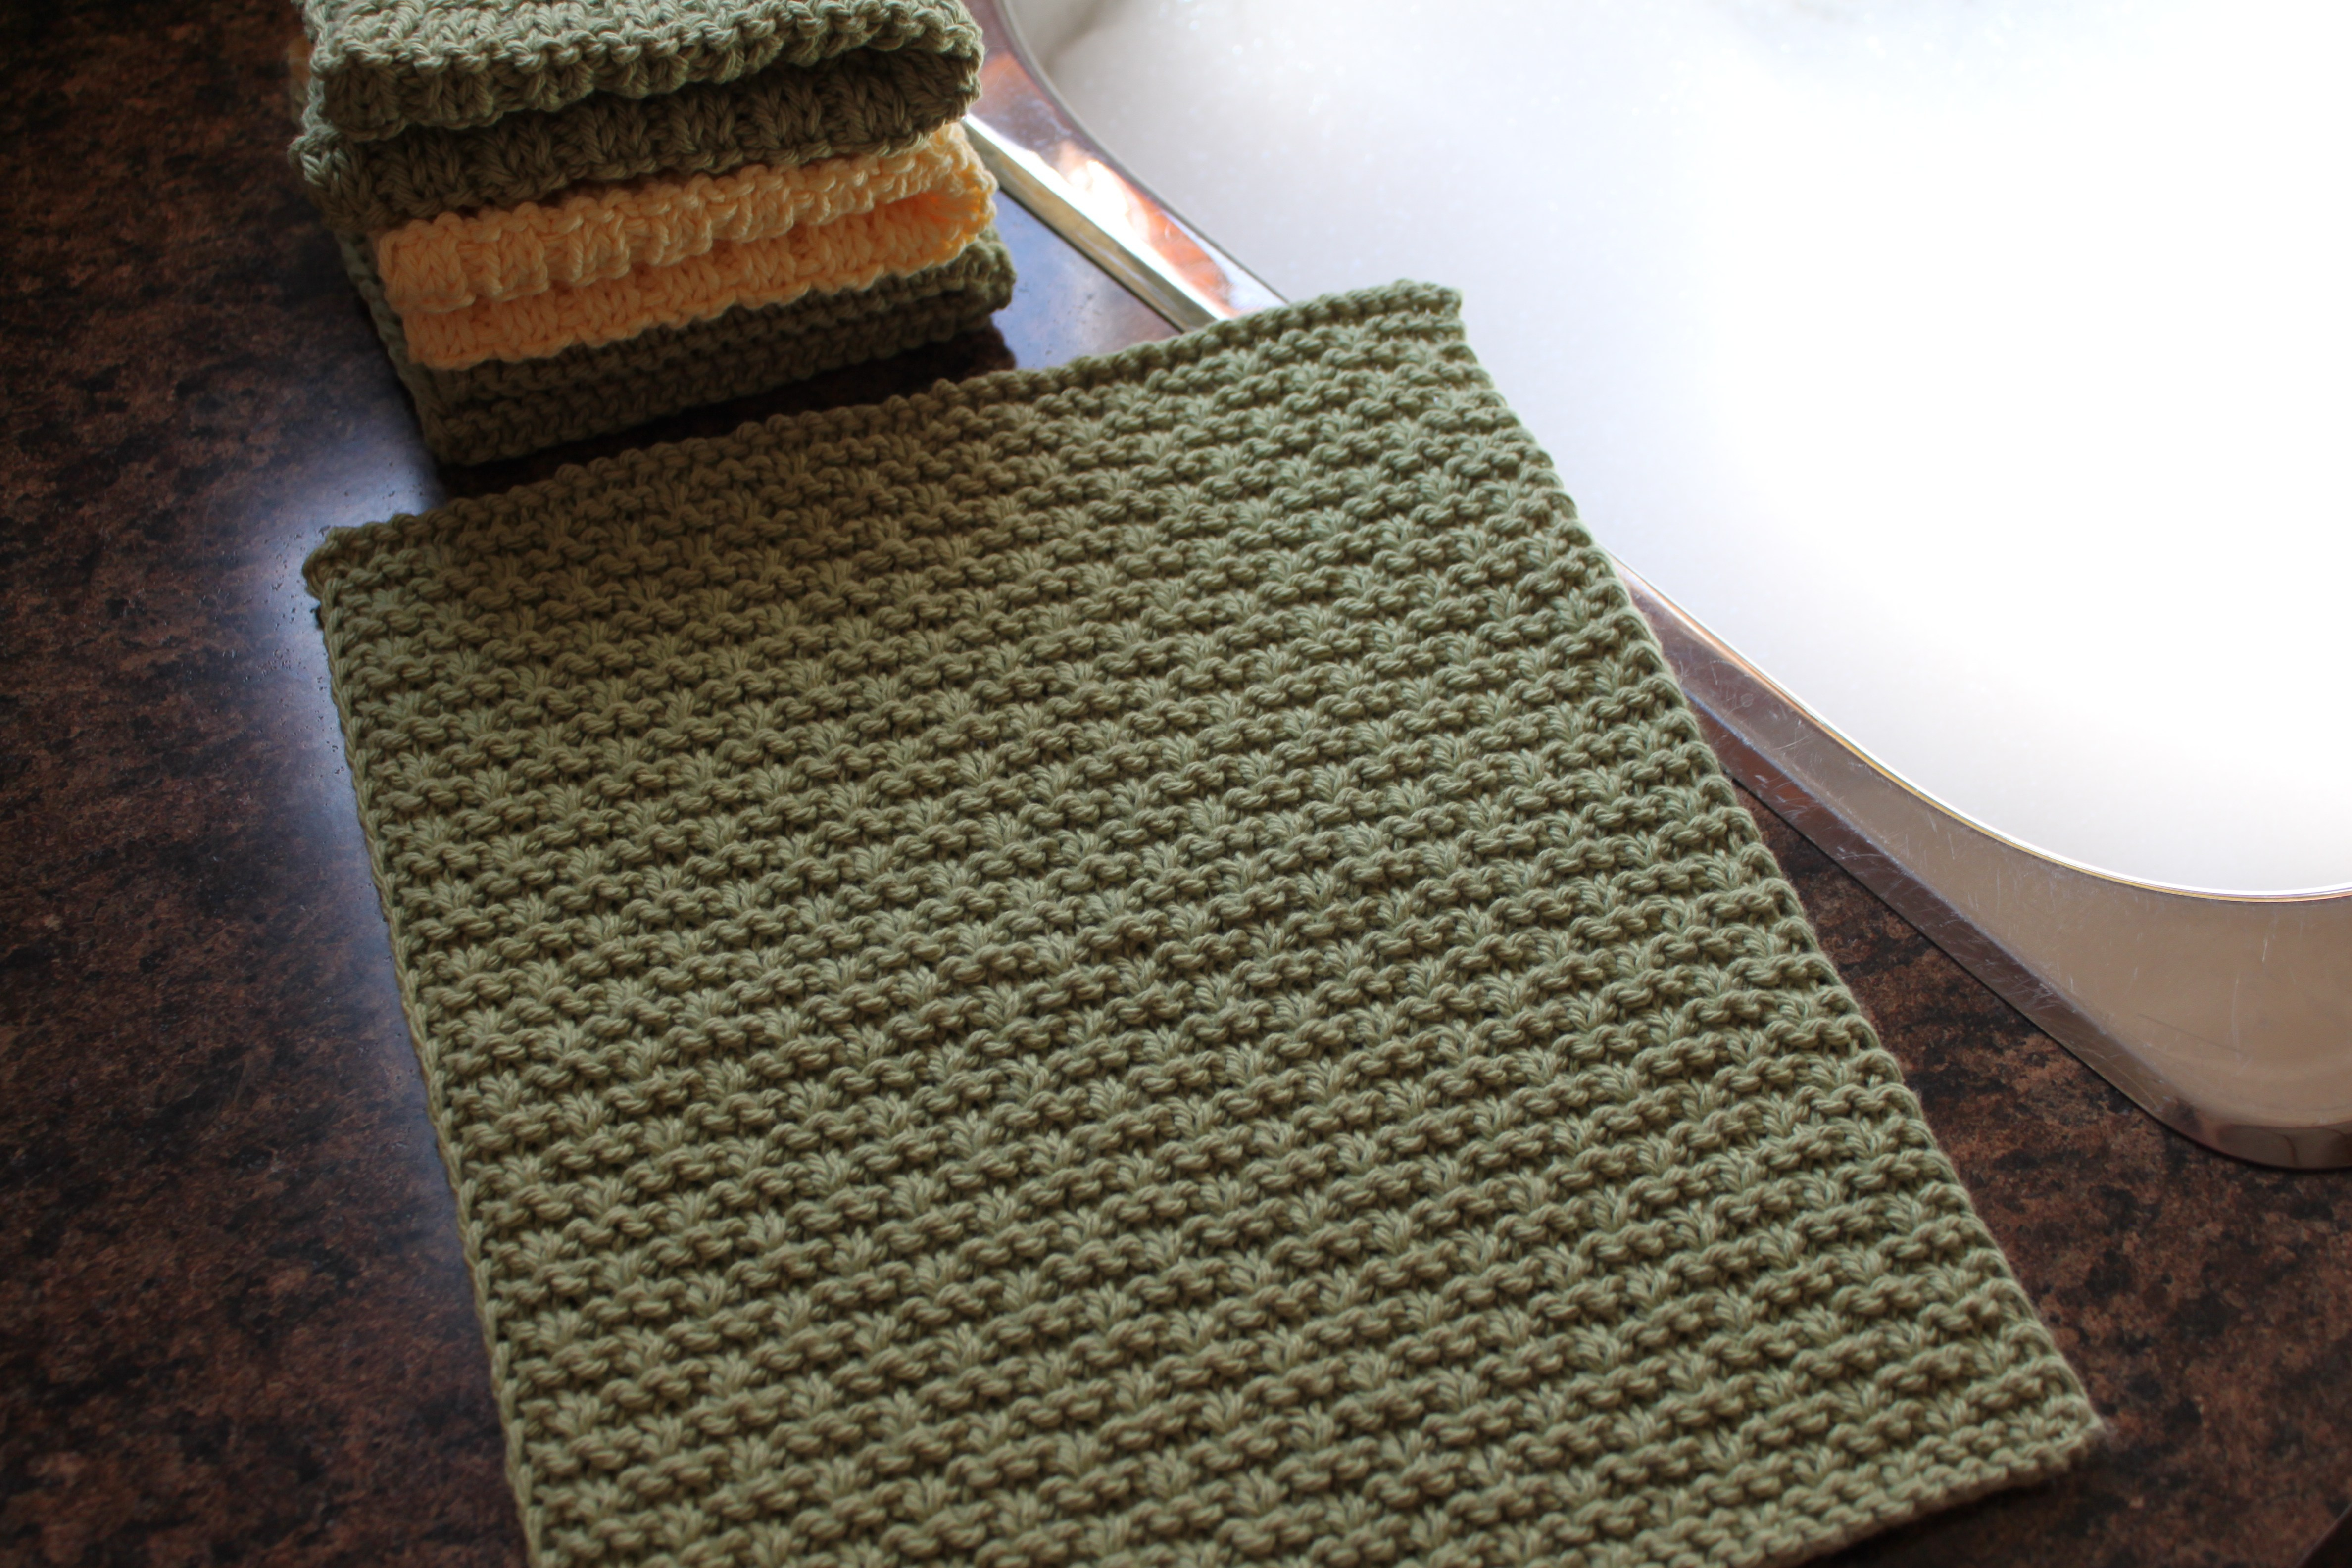 Washcloth Knitting Pattern Free Snakes Ladders Washcloth Leah Michelle Designs